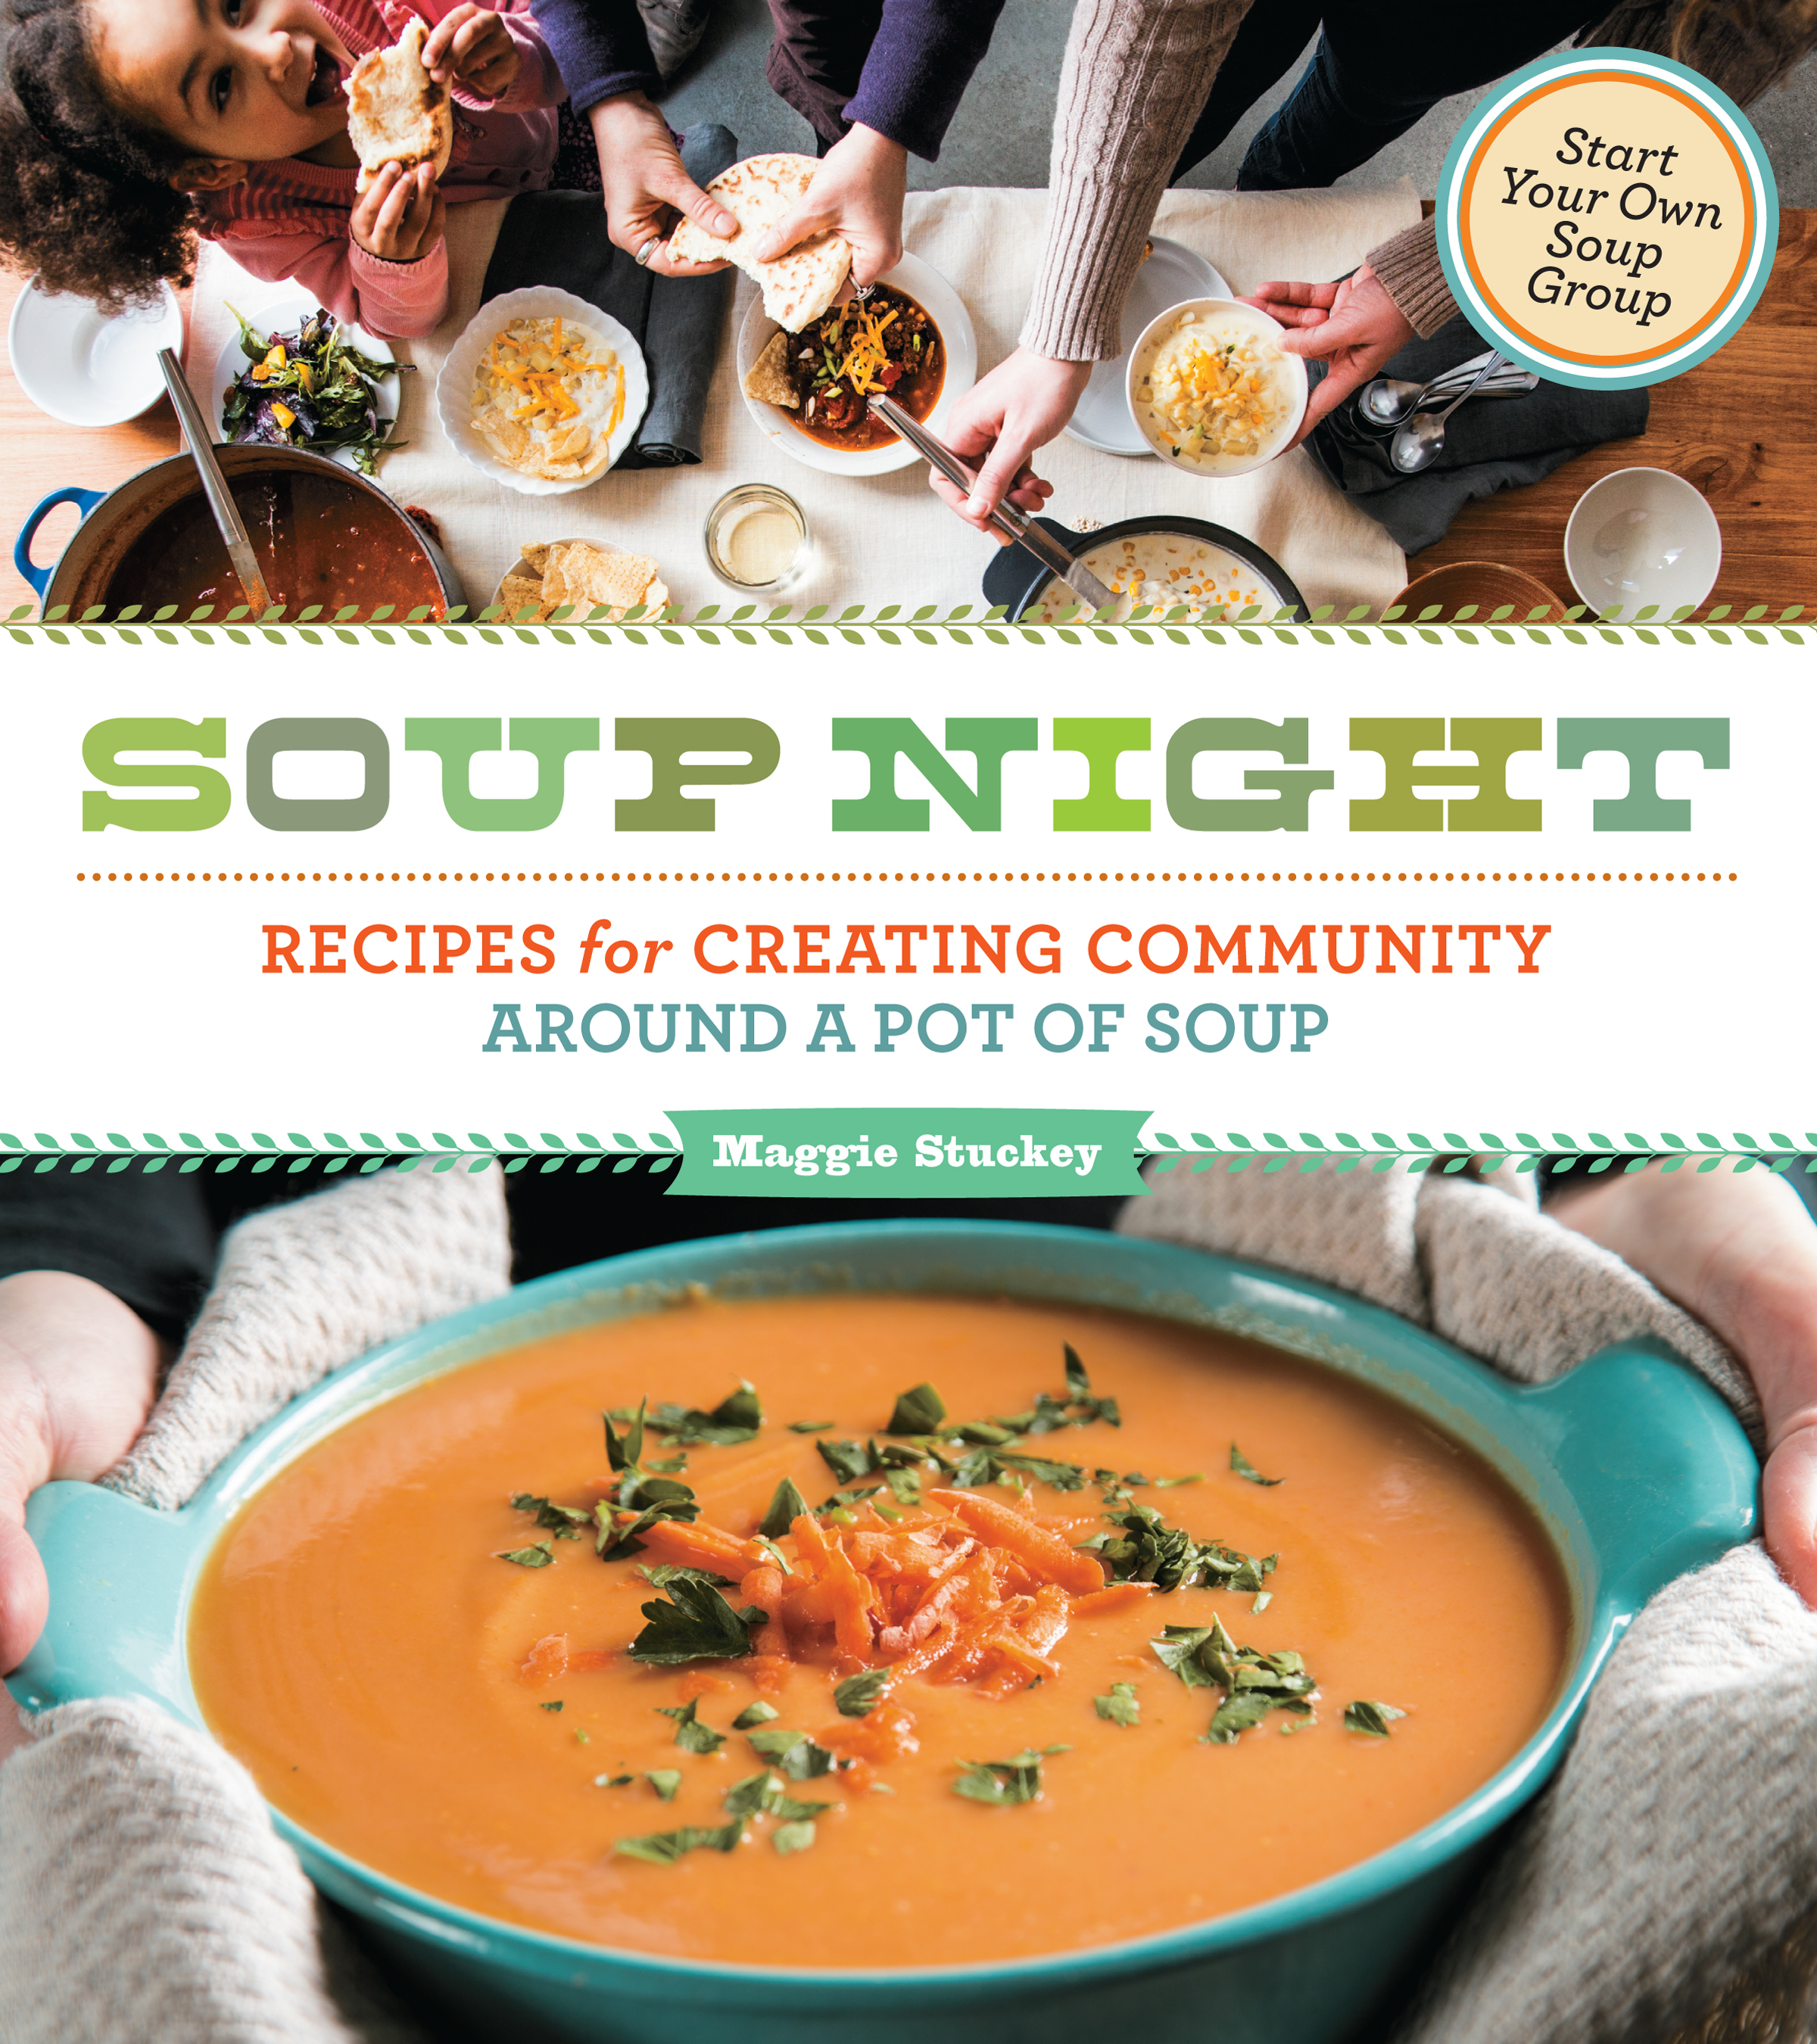 Soup Night Recipes for Creating Community Around a Pot of Soup - Maggie Stuckey